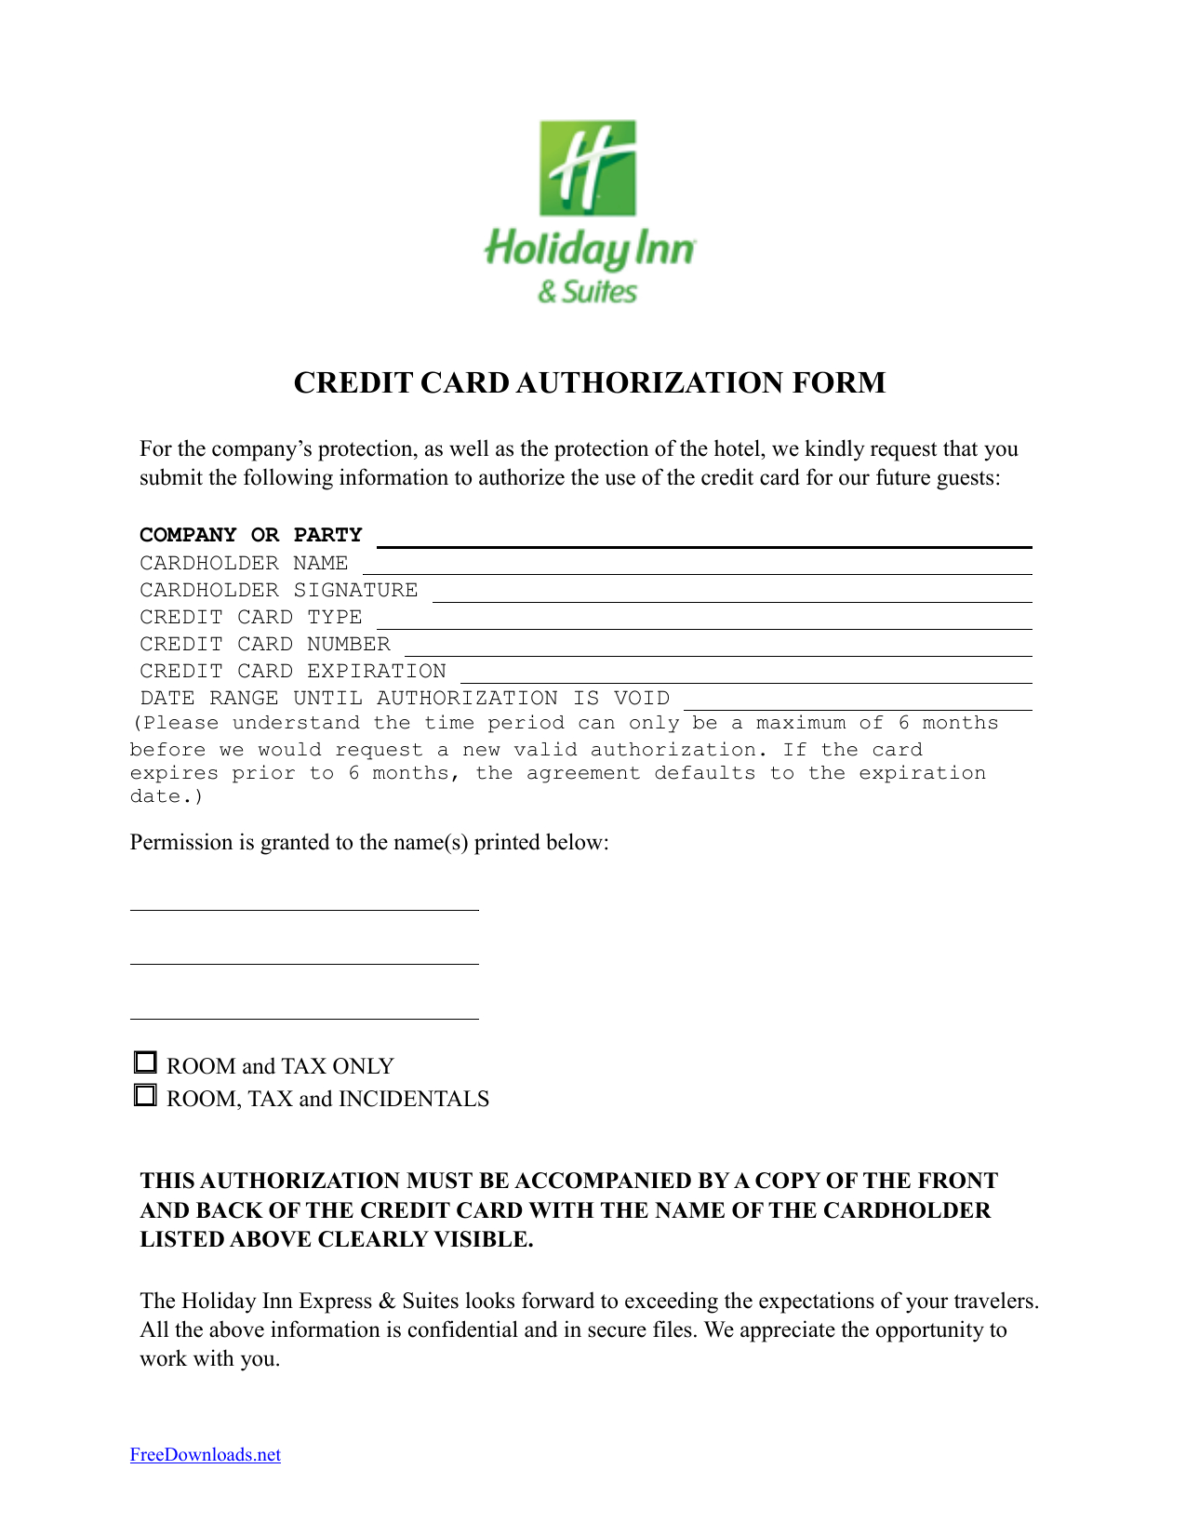 Download Holiday Inn Credit Card Authorization Form Template With Credit Card On File Form Templates Credit Card App Credit Card Images Credit Card